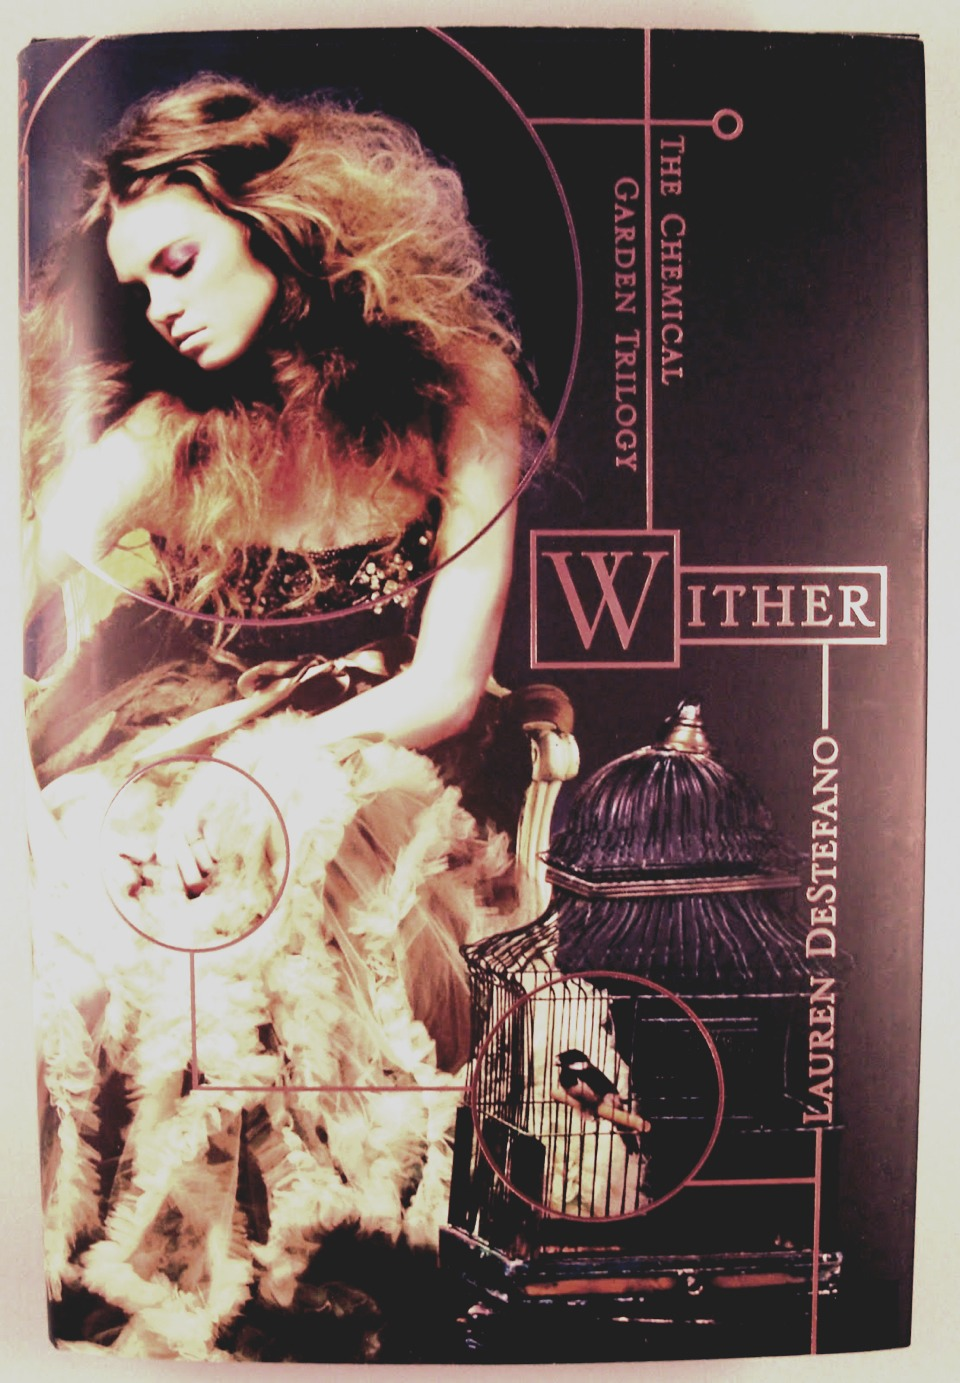 Dystopian trilogy by Lauren Destefano Whiter,Fever,Sever